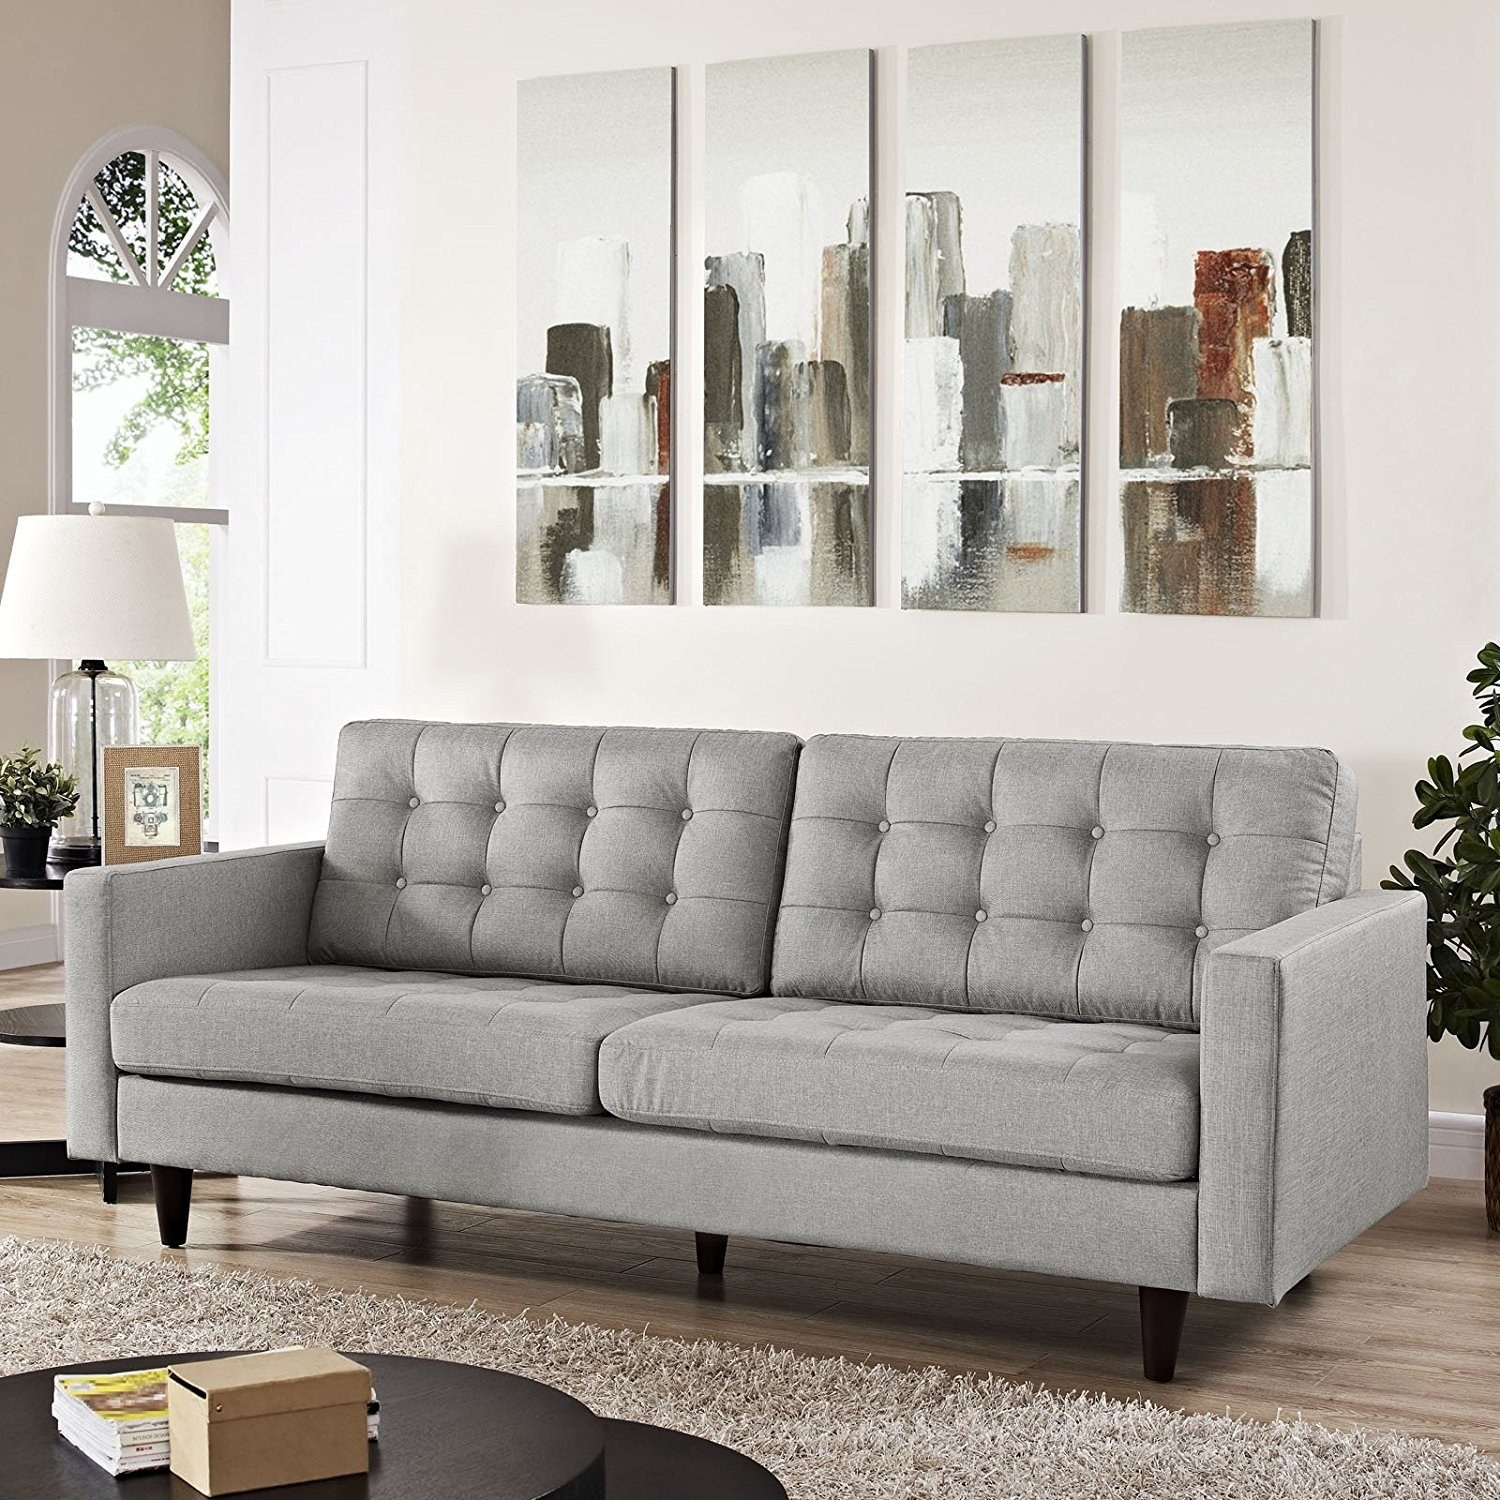 Sofas Online Shop The Best Places To Buy A Sofa Or Couch Online